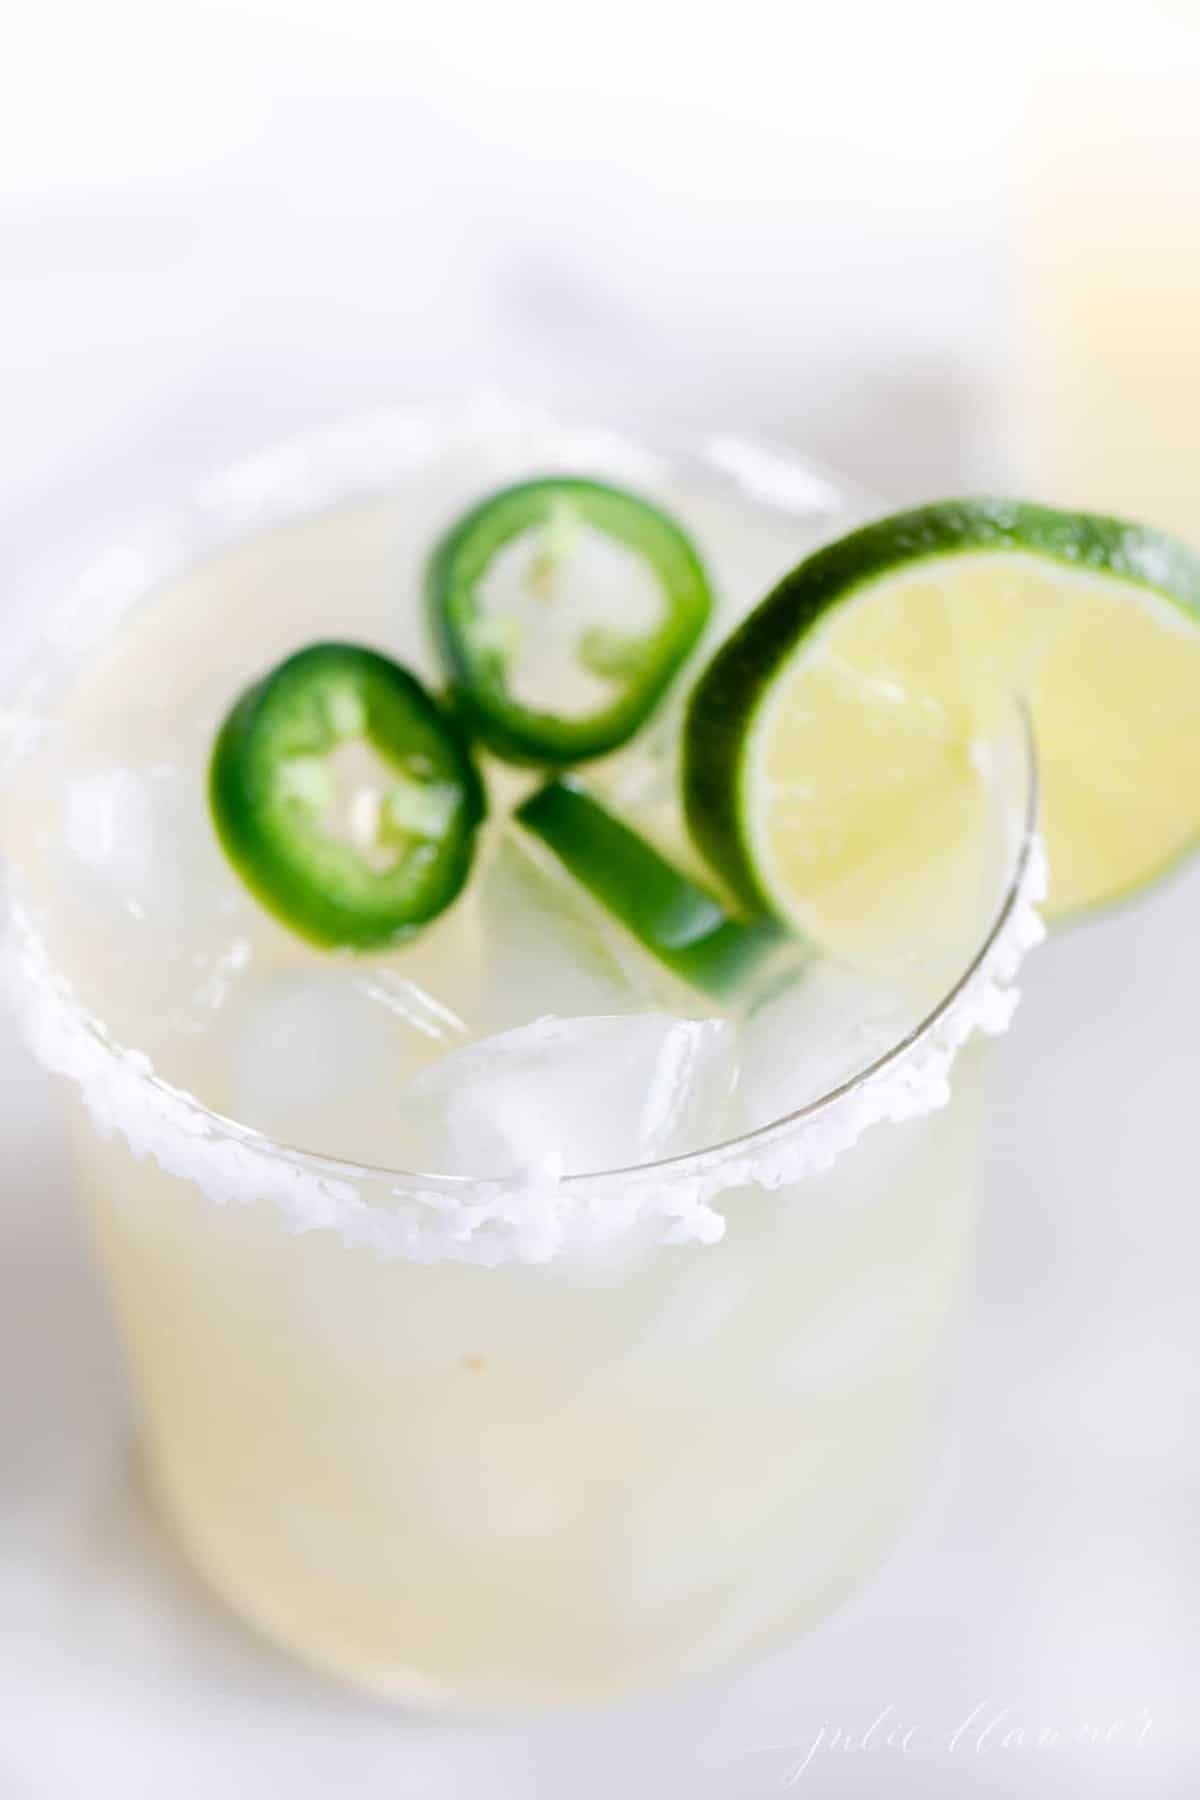 looking down into a clear glass full of spicy margarita topped with sliced jalapeno and lime.